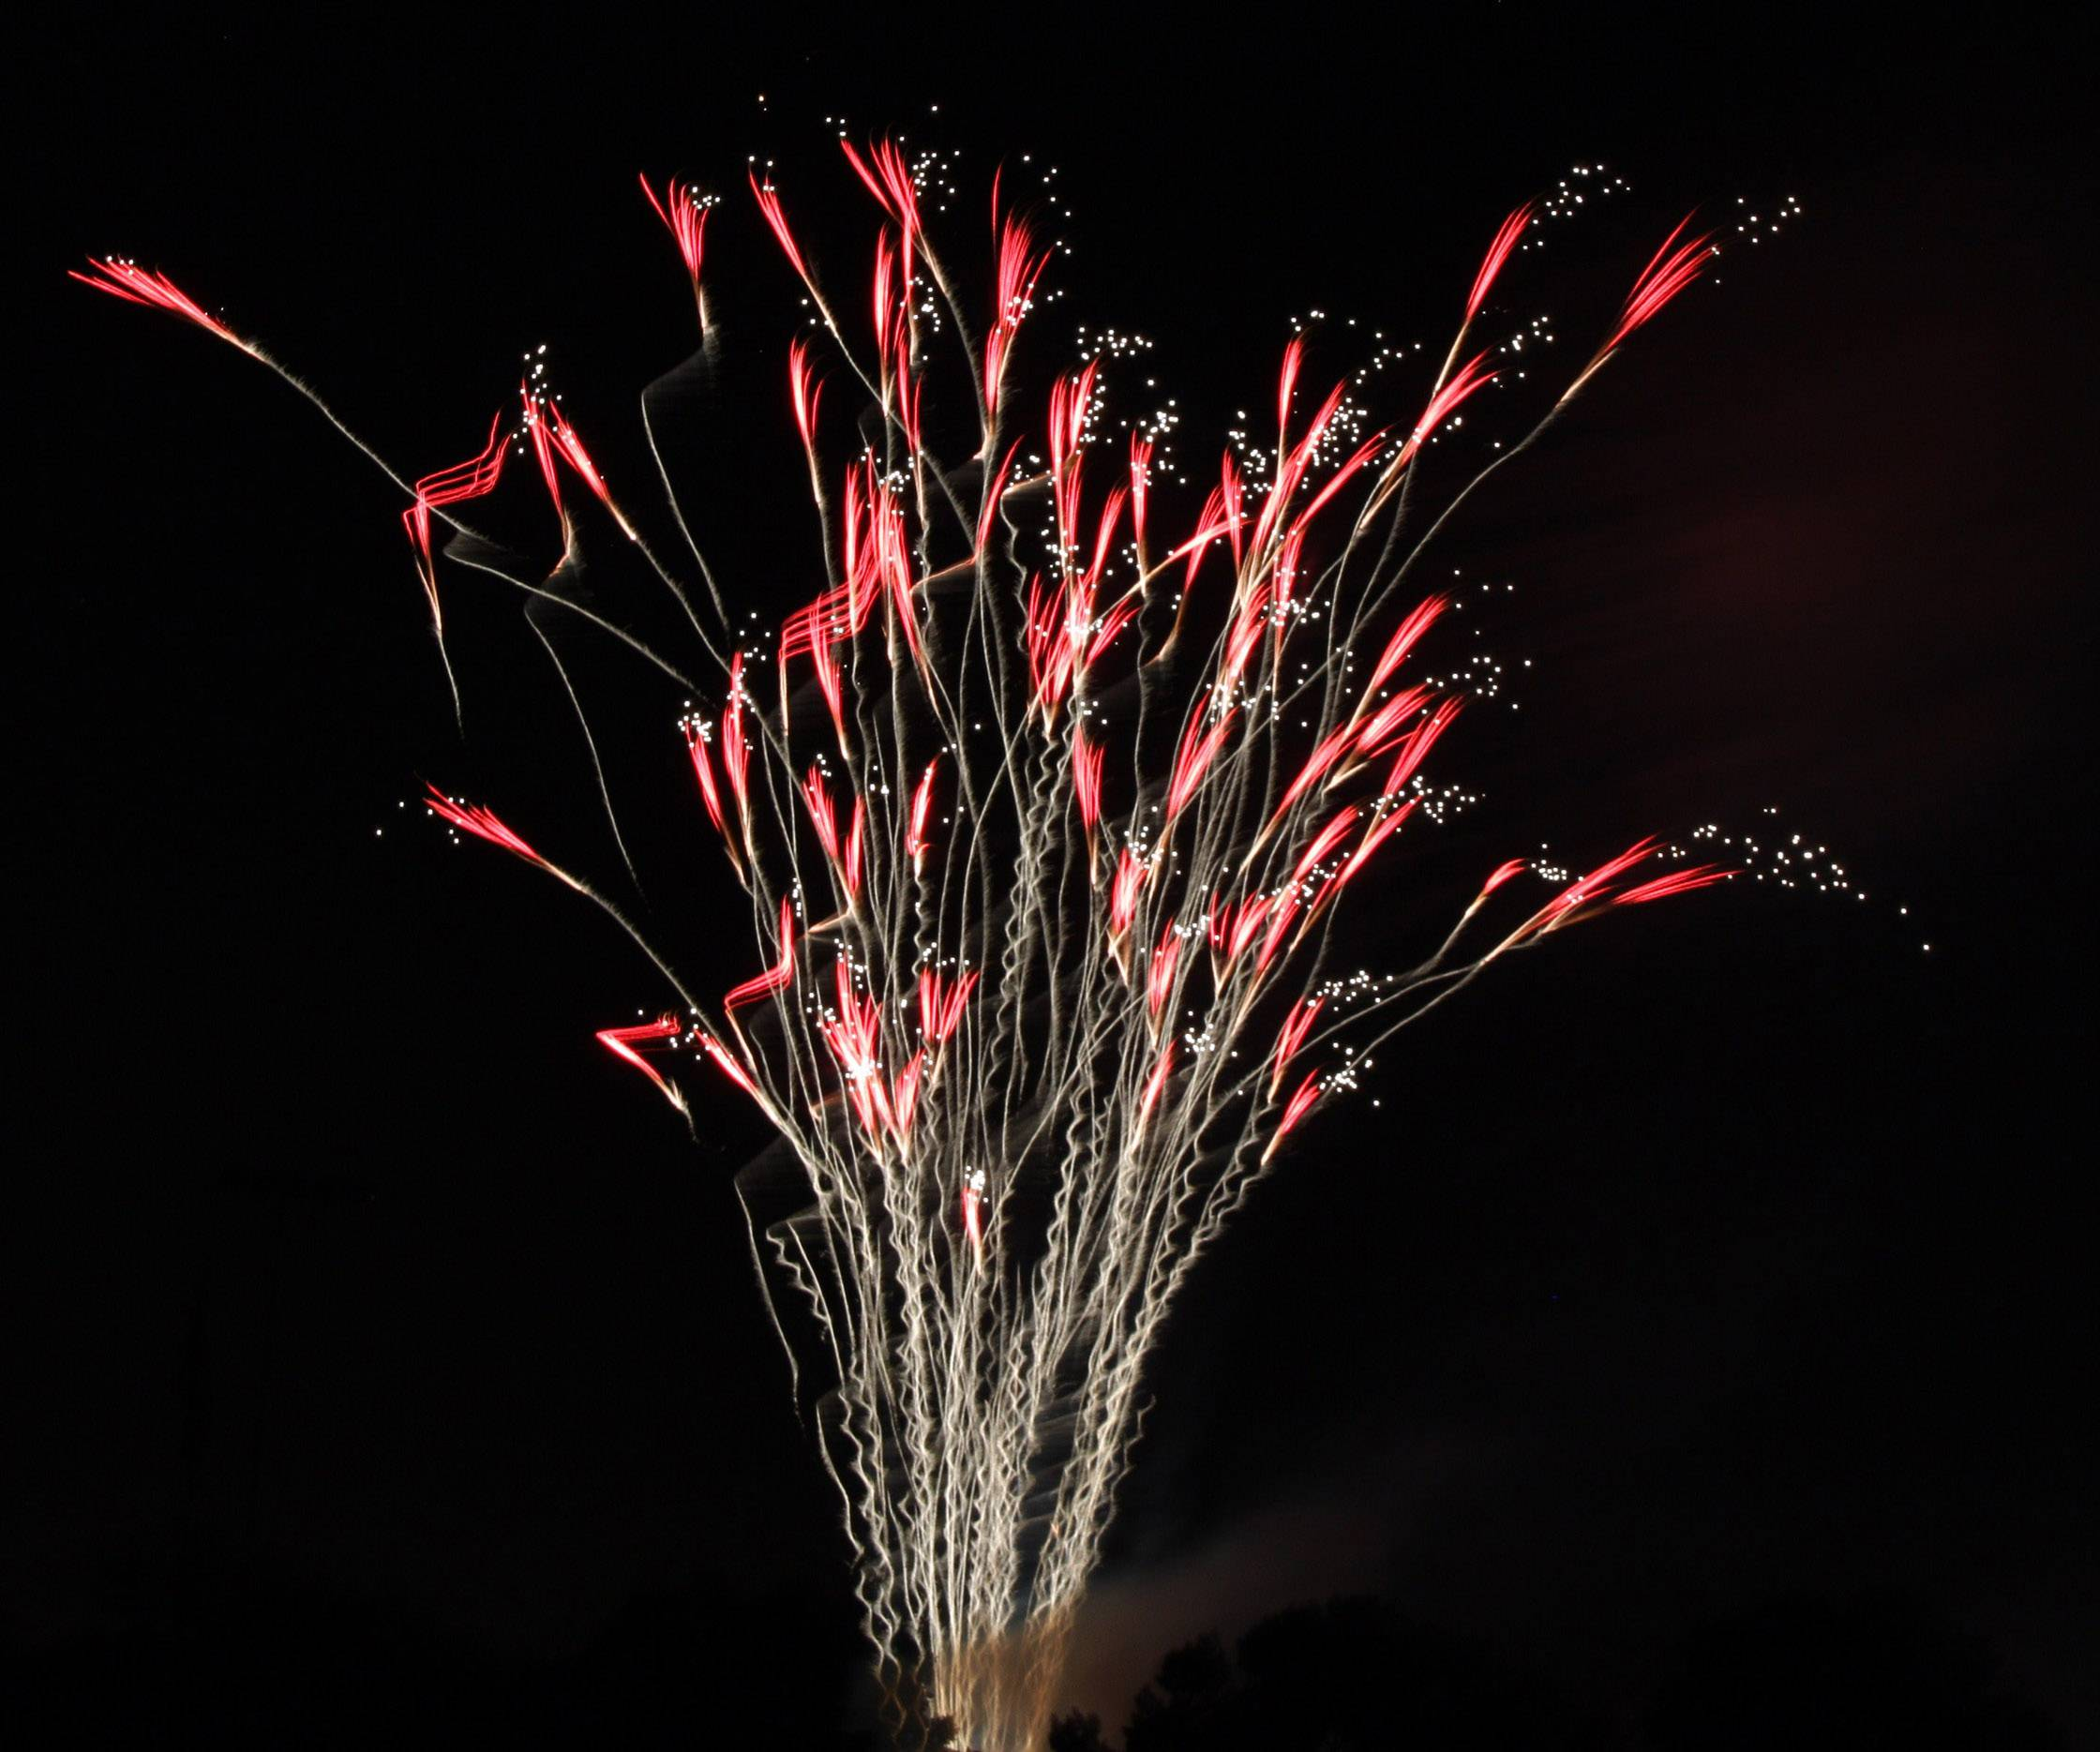 The fantastic fireworks show in Libertyville on the Fourth of July made for an unusual display of light and color creating one scene that looked like a bouquet of flowers with pollen blowing off.